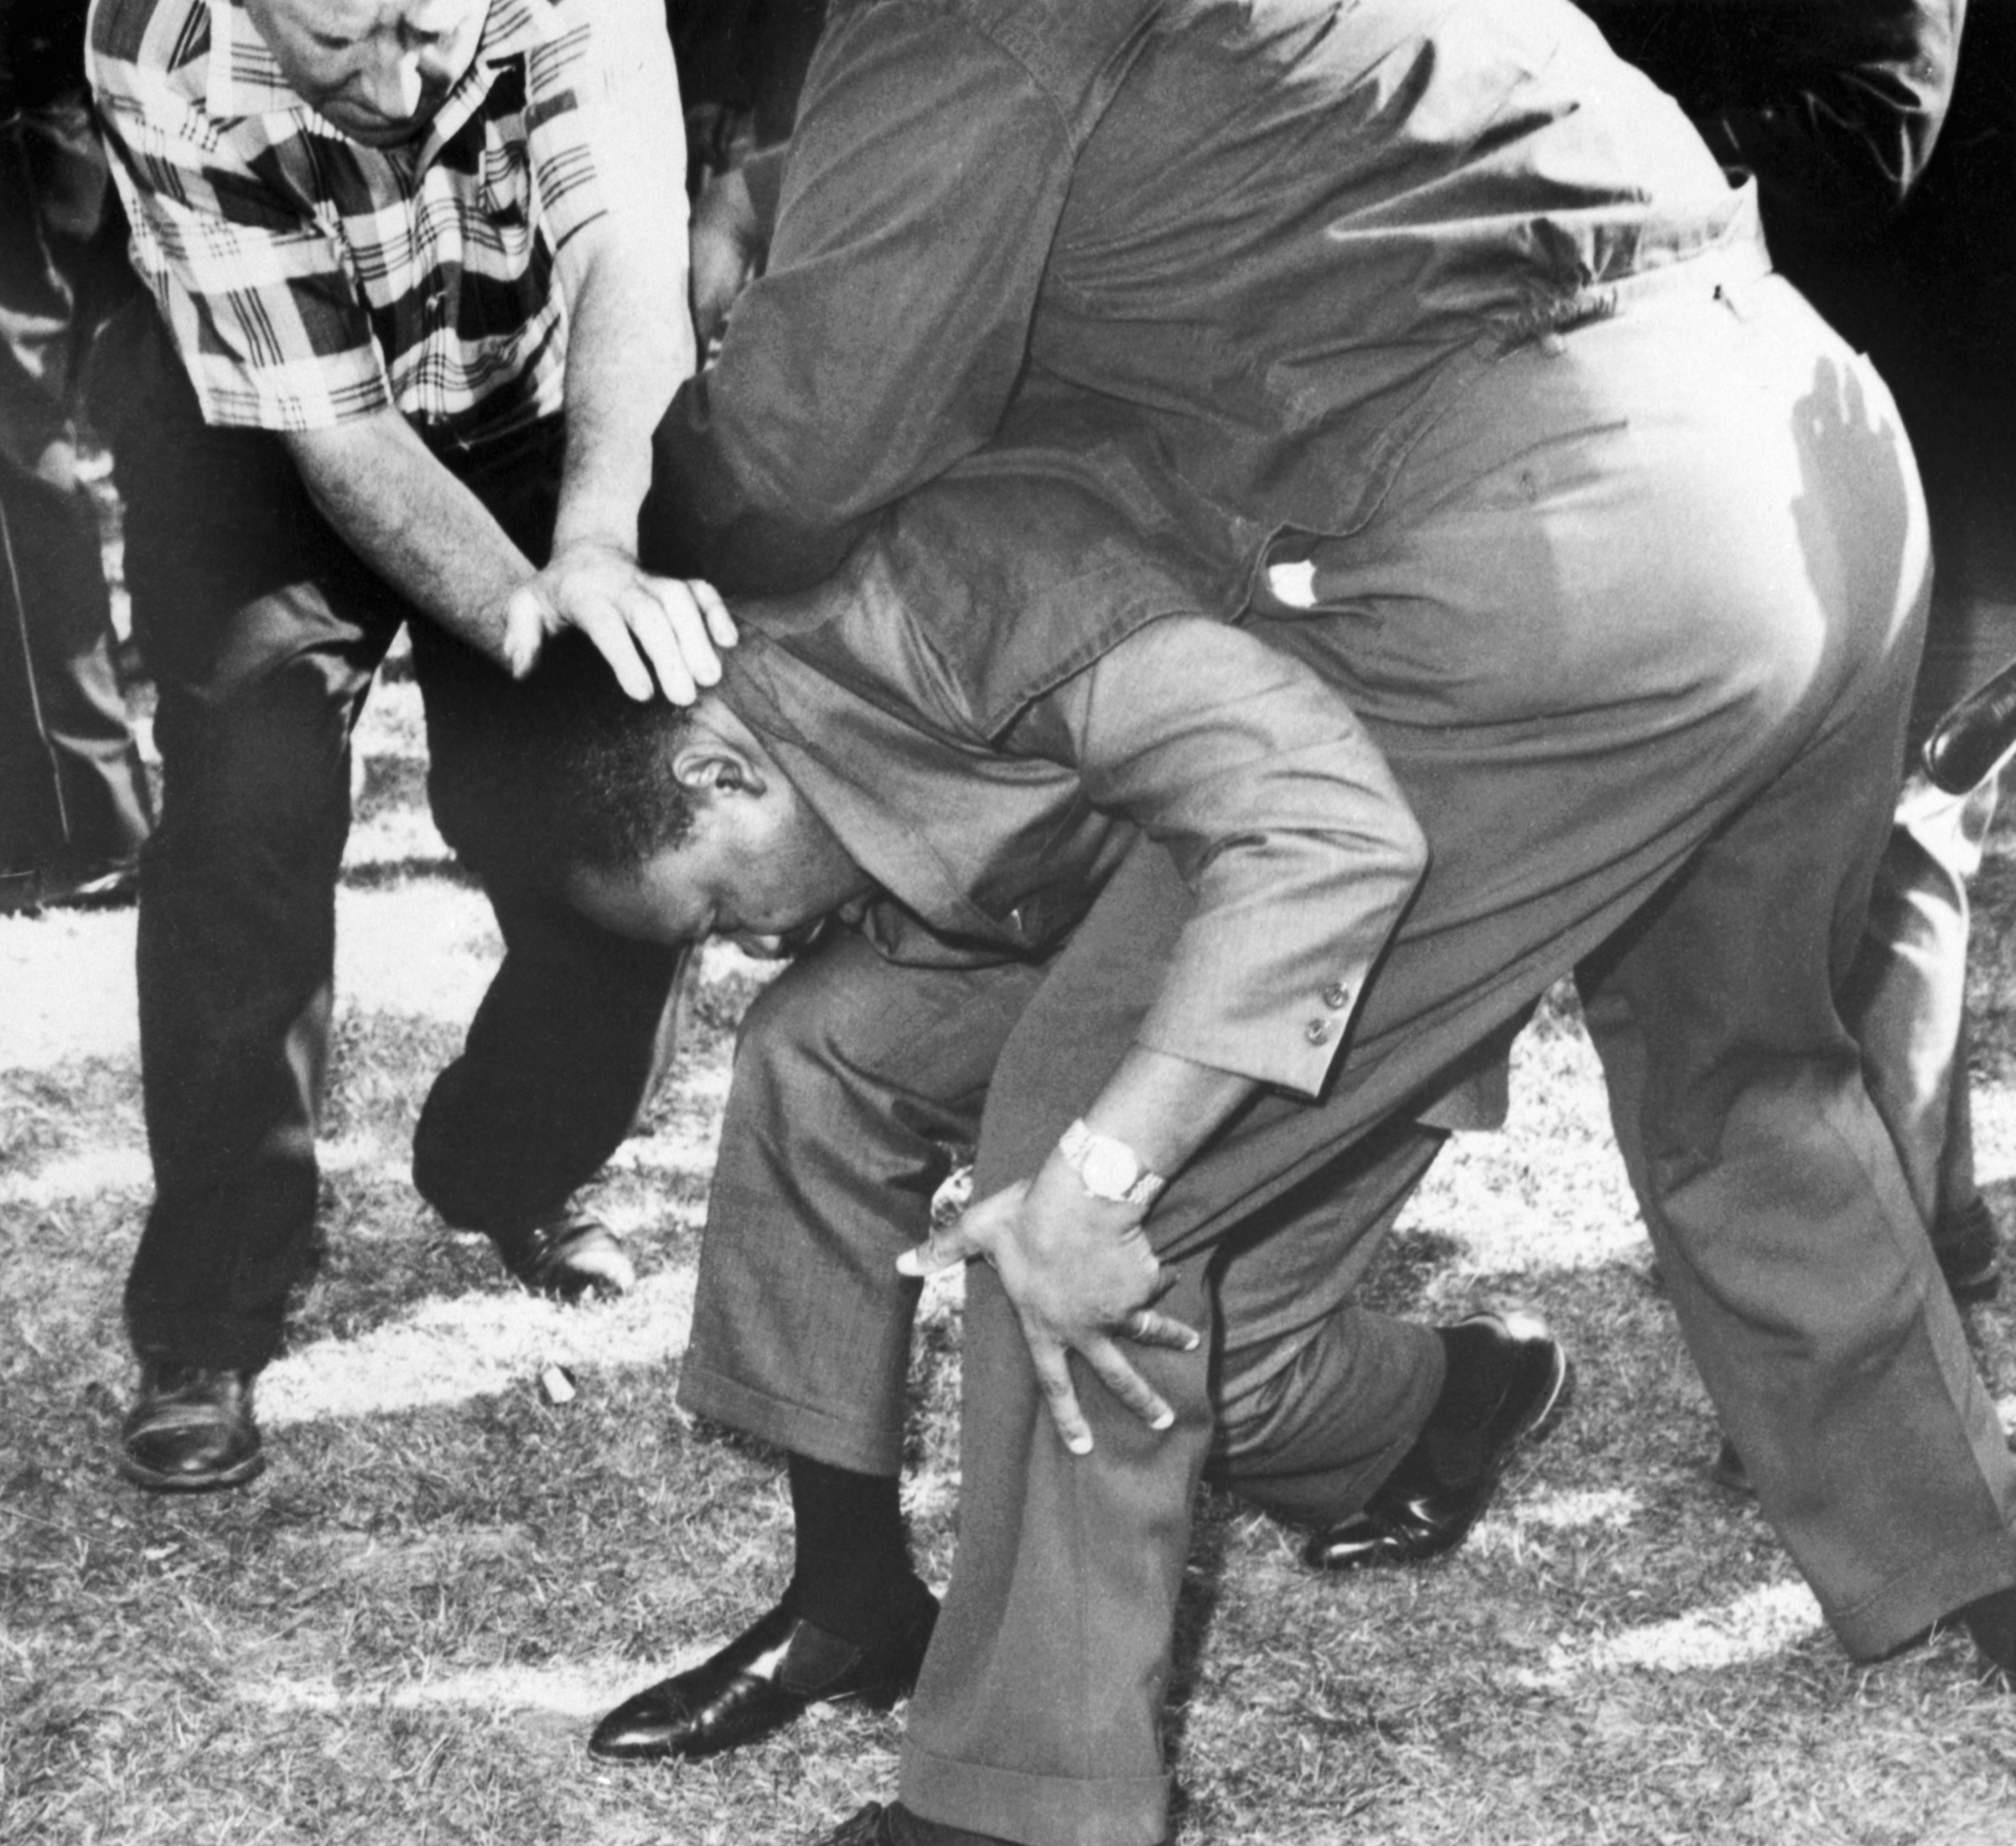 Struck on the head by a rock thrown by a group of hecklers in Chicago, Dr. Martin Luther King falls to one knee. Aug. 5, 1966.